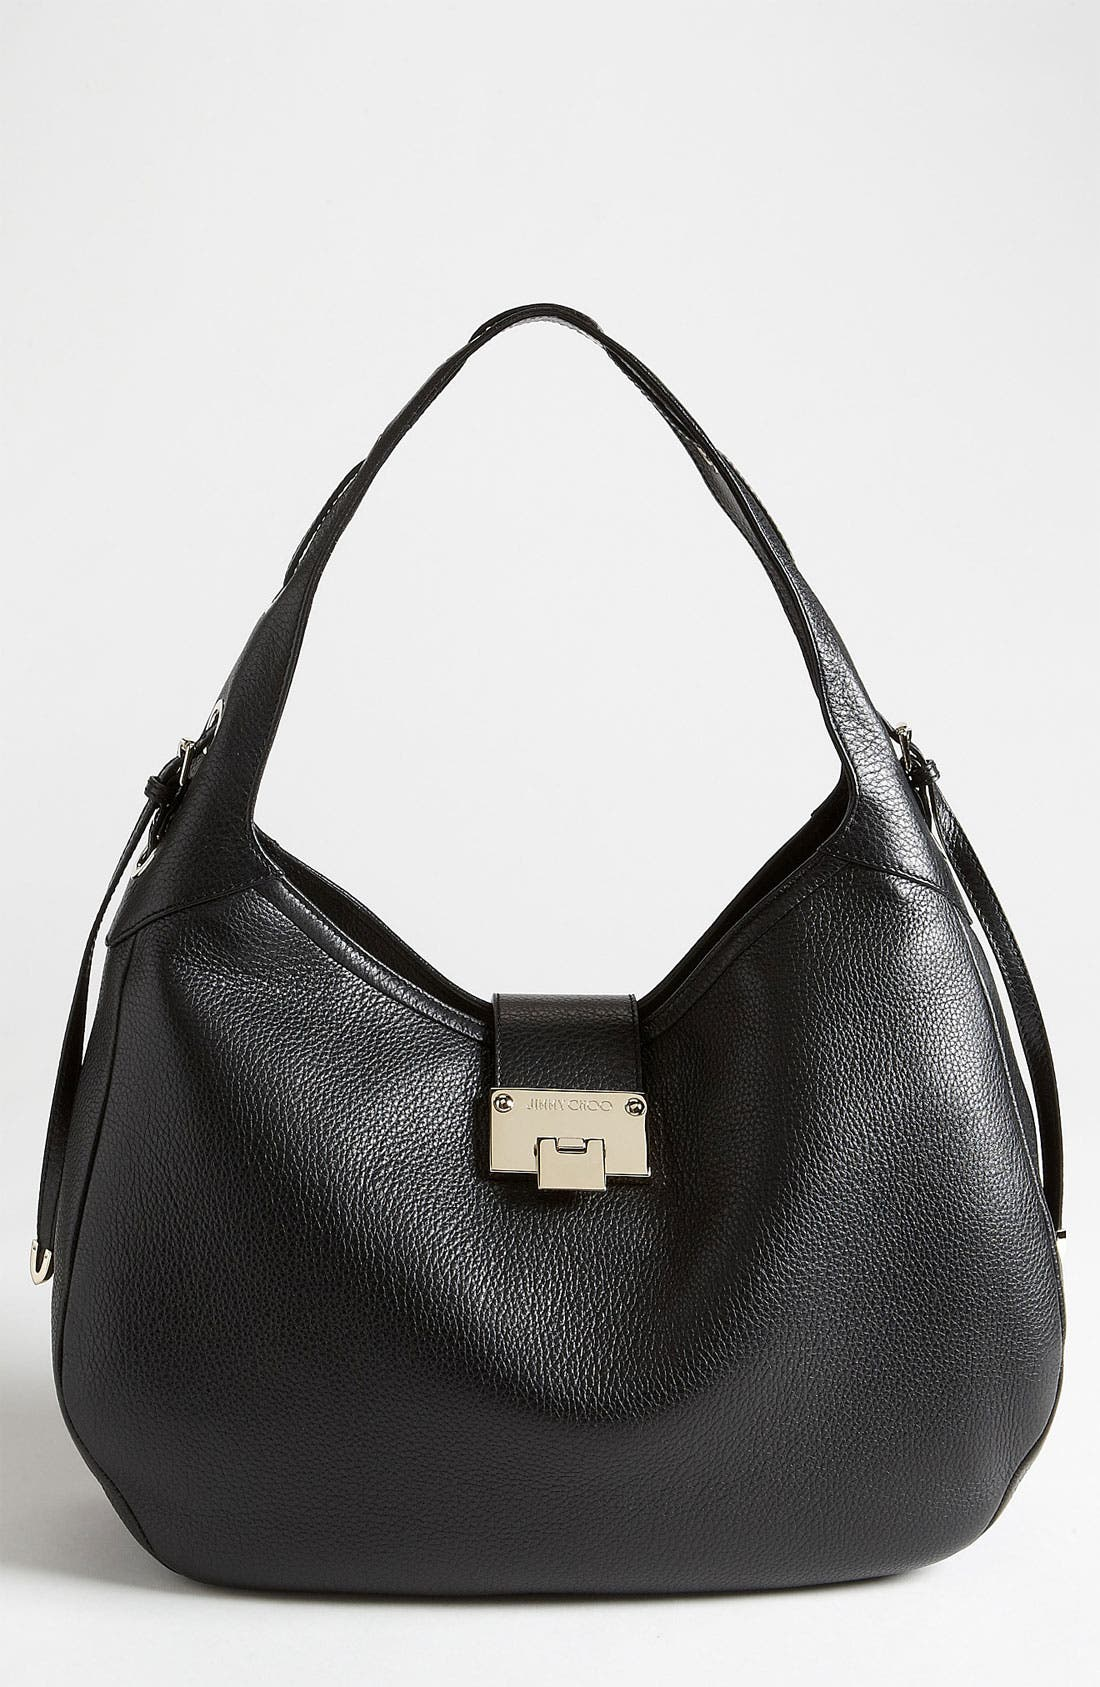 Main Image - Jimmy Choo 'Relax' Leather Hobo